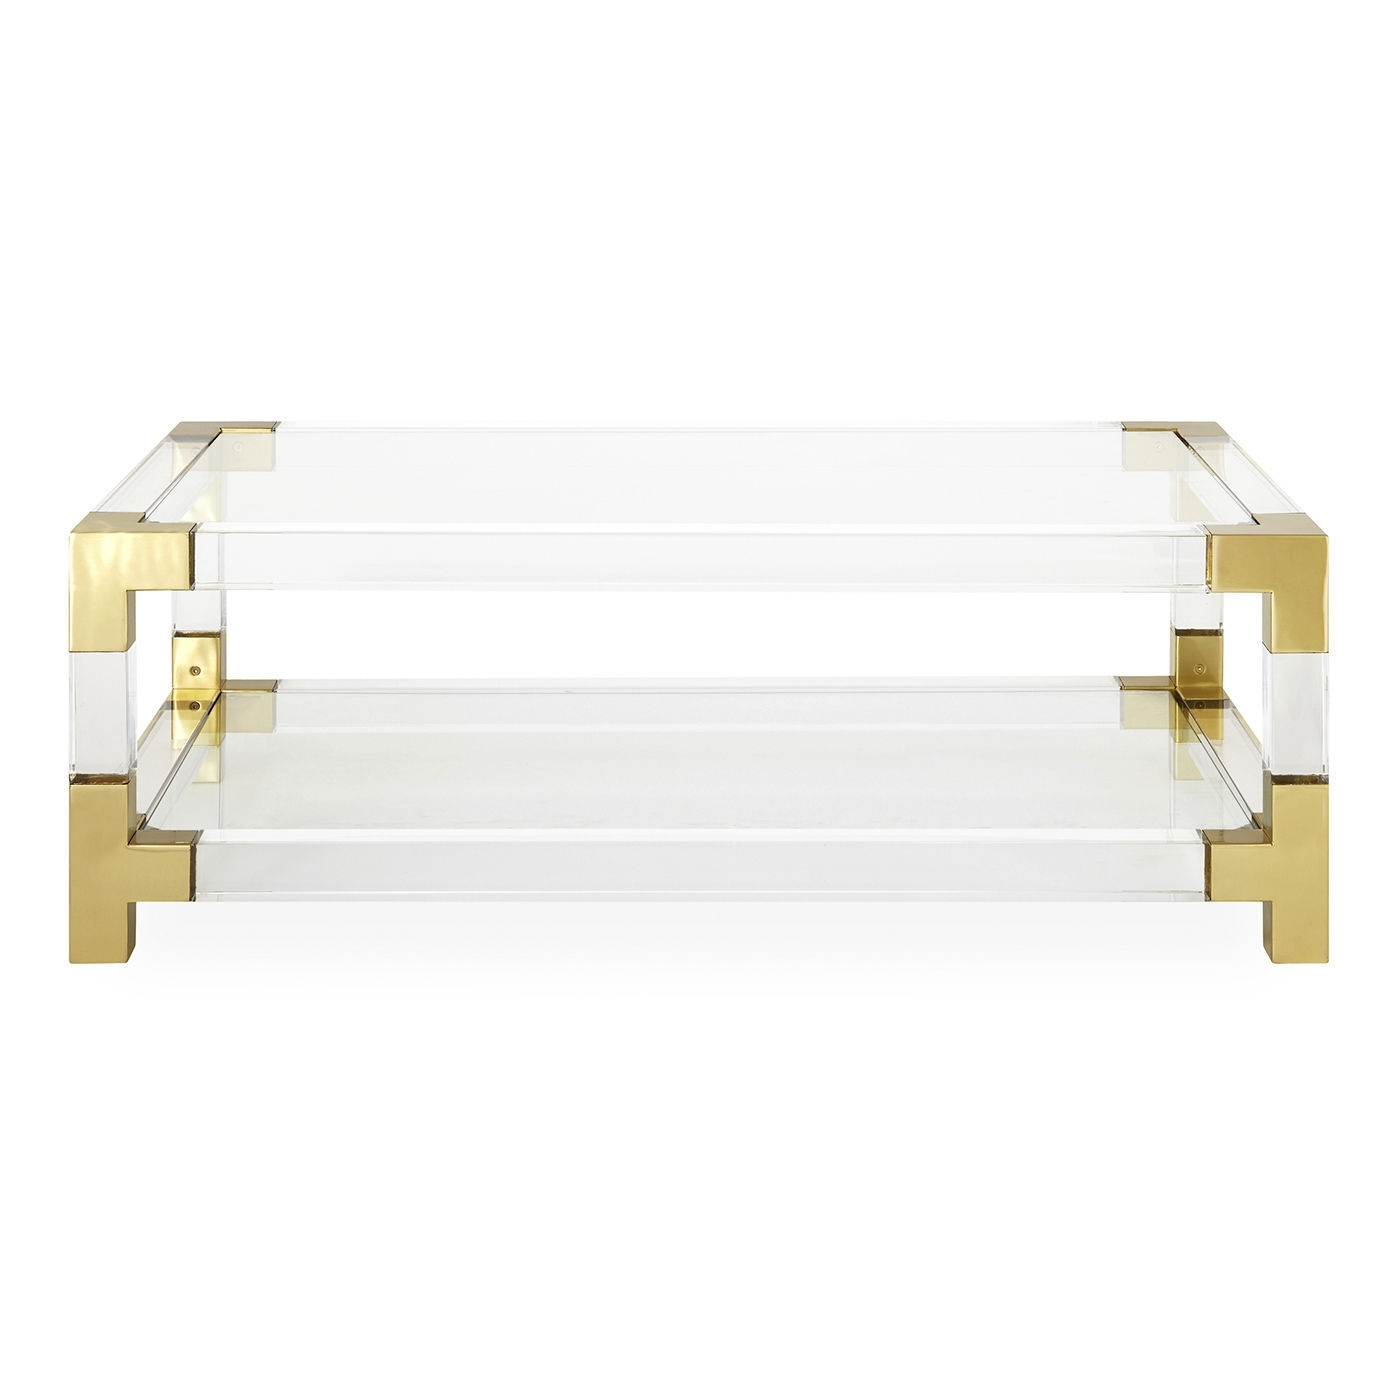 Well Liked Acrylic & Brushed Brass Coffee Tables With Regard To Contemporary Coffee Table / Glass / Brushed Brass / Acrylic (View 19 of 20)